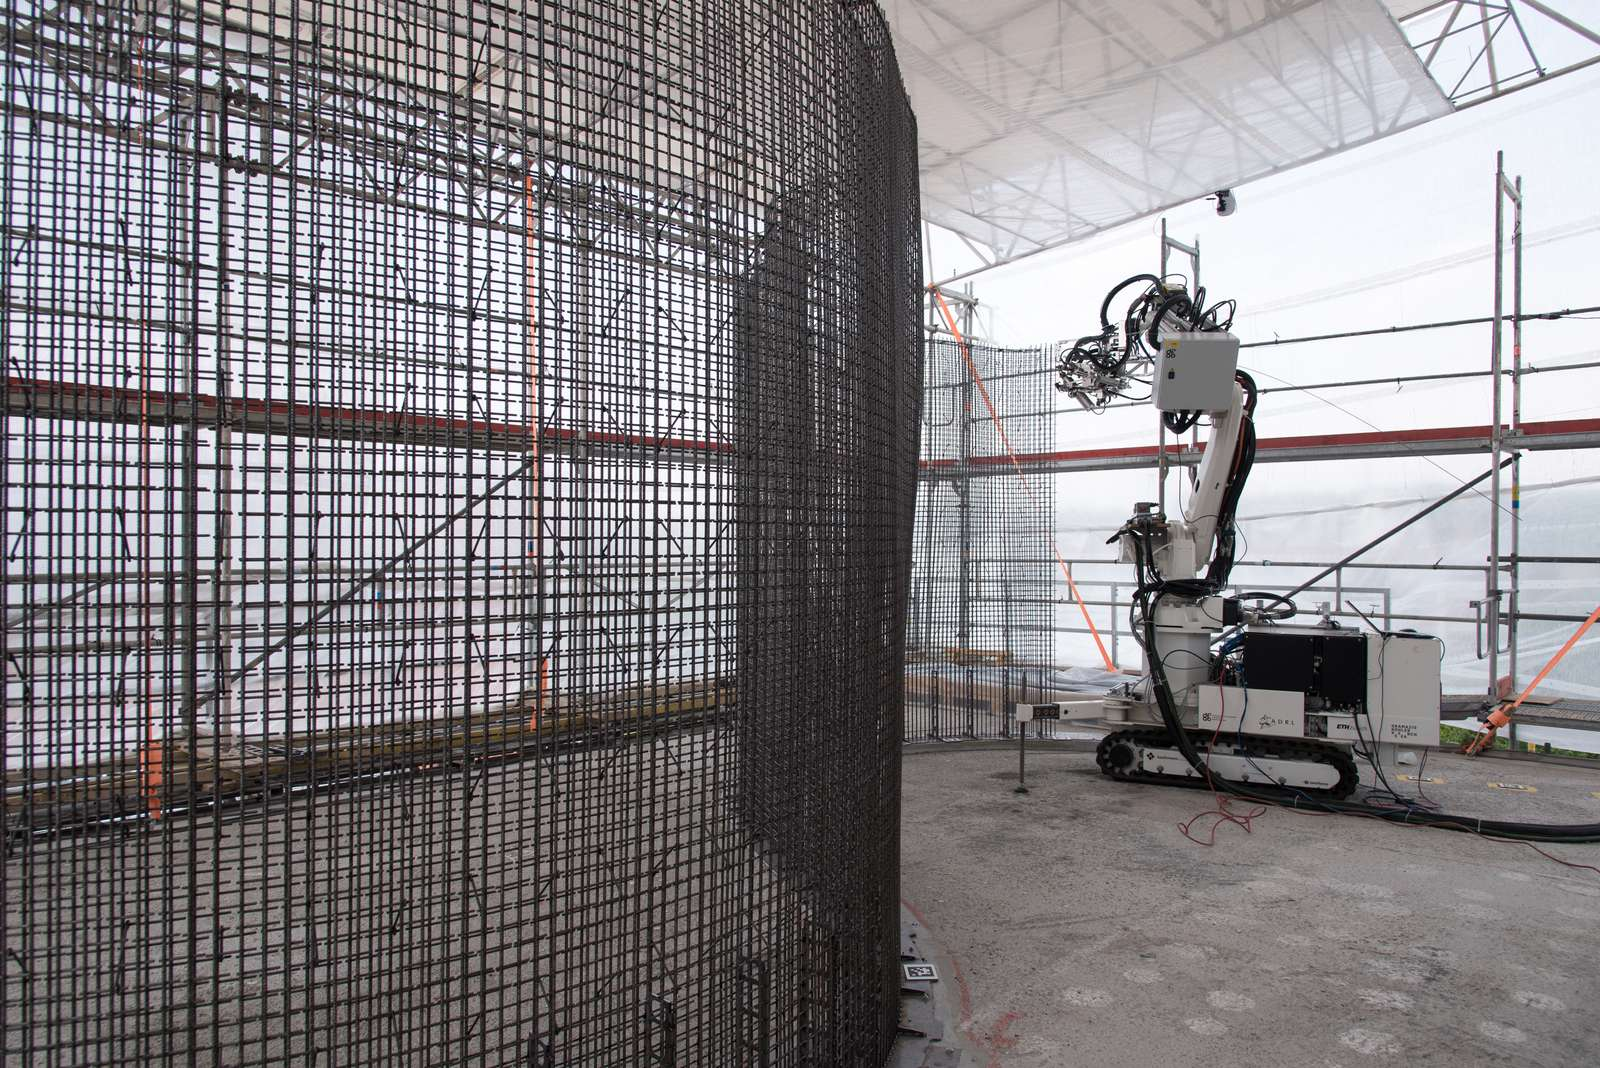 The Mesh Mould fabricating formworks. Photo via NCCR Digital Fabrication.